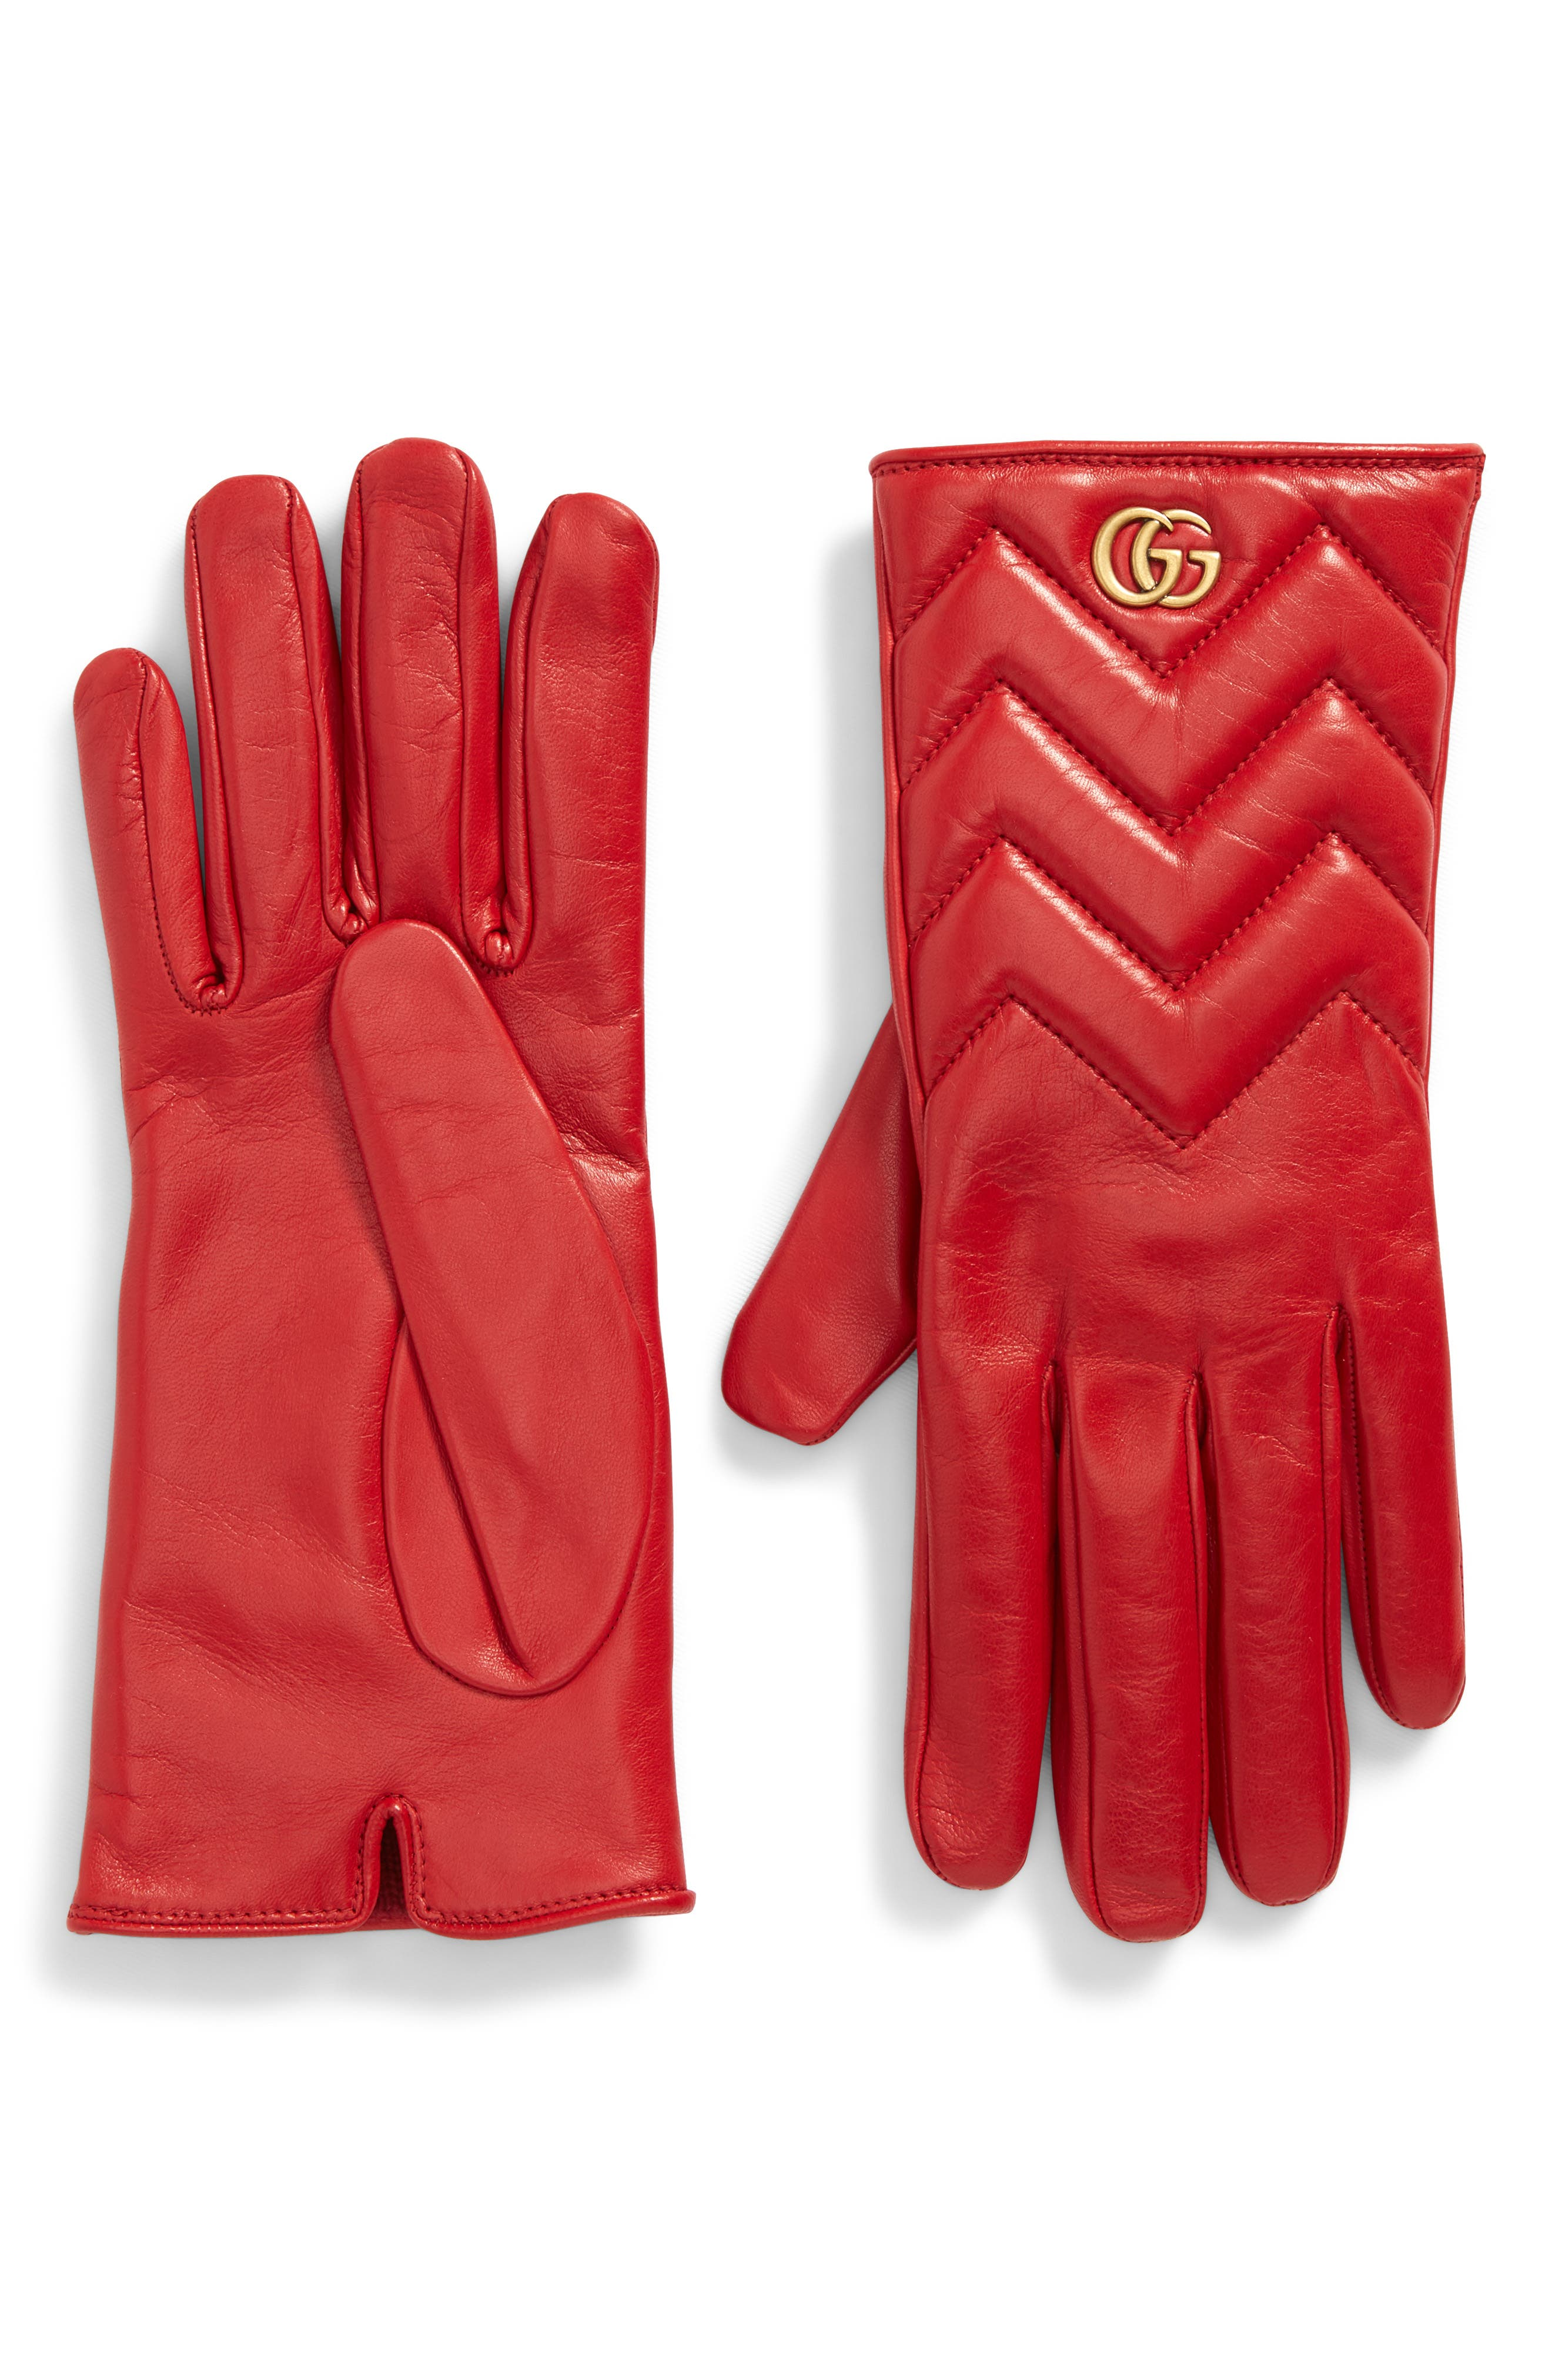 Gucci Gg Marmont Cashmere Lined Leather Gloves - Red